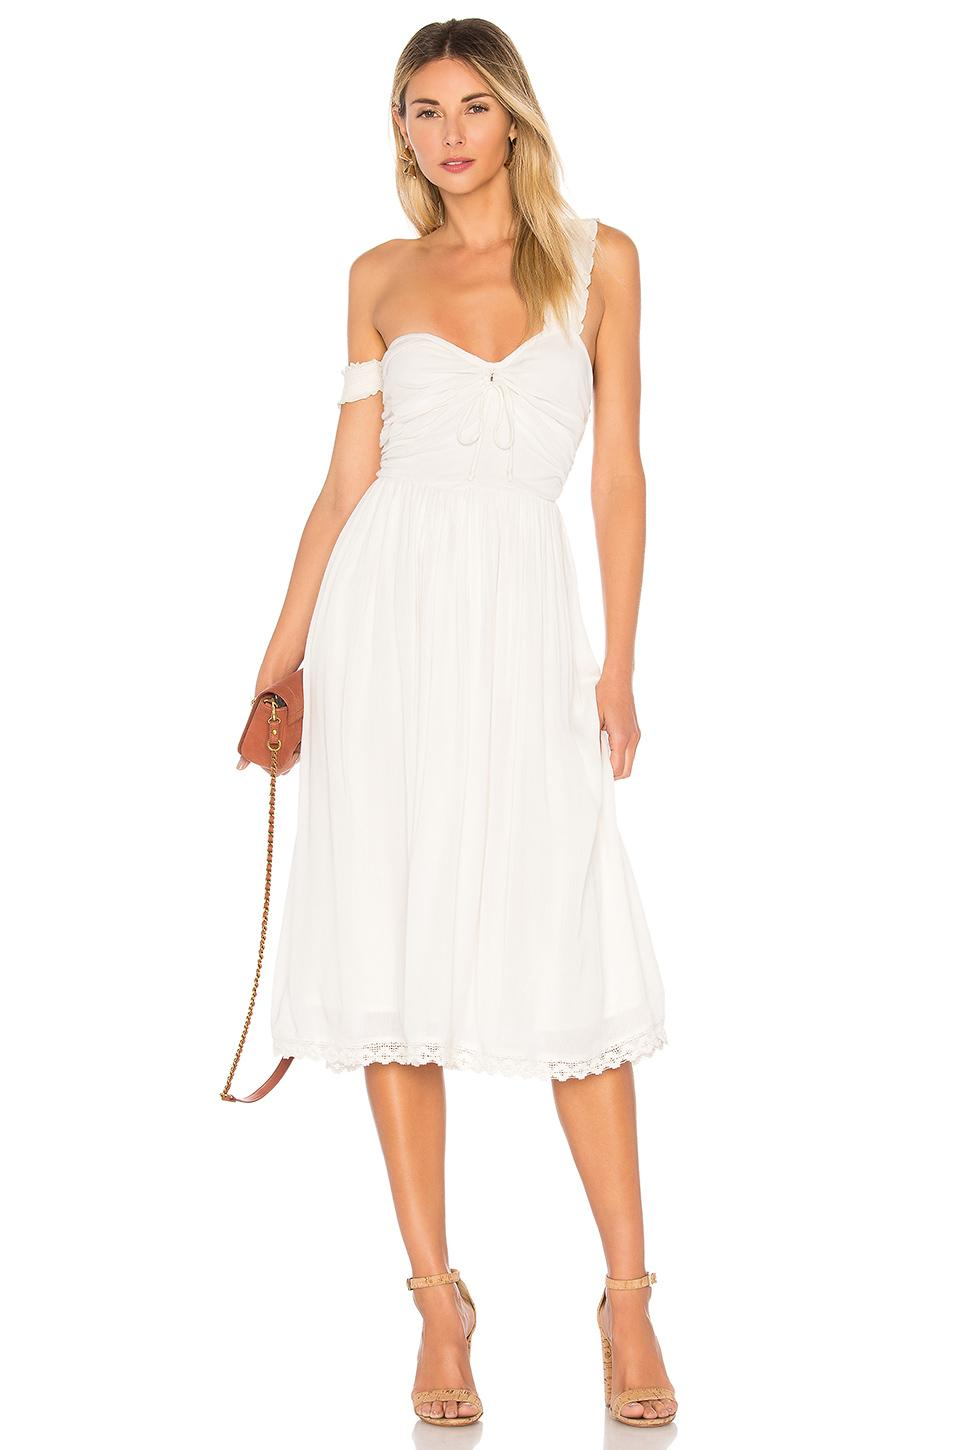 House Of Harlow 1960 X Revolve Taylor Dress In Cream.